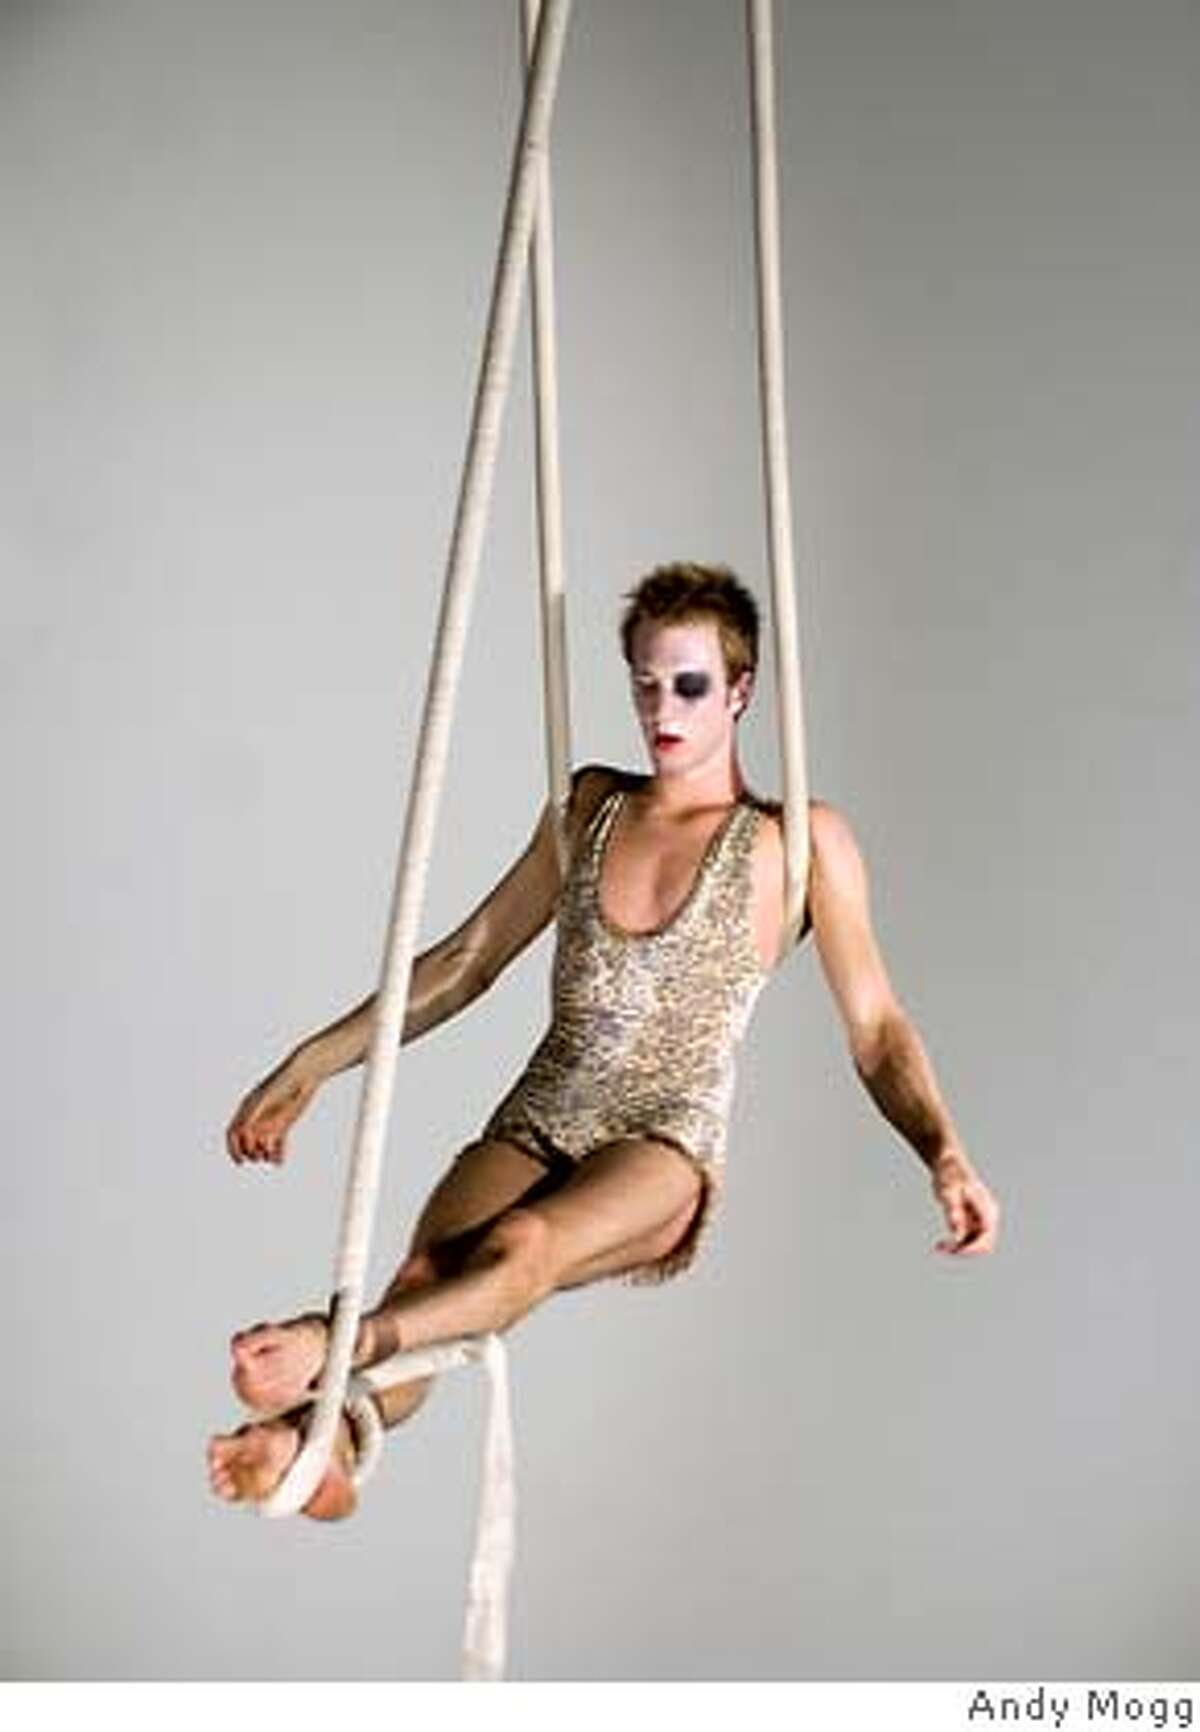 Brett Womack in Keith Hennessy & Circo Zero�s Sol niger - Sept. 20 - 29, 2007 at Project Artaud Theatre in SF Keith Hennessy�s Circo Zero presents� Sol niger * A new work of contemporary Circus and Performance Conceived & Choreographed by Keith Hennessy Bay Area Premiere Sept. 20 � 23 (Thurs. - Sun.) and Sept. 26 - 29, 2007 (Wed. - Sat.) All shows at 8:00 pm Project Artaud Theatre in SF Ran on: 09-16-2007 Brett Womack in Circo Zeros Sol Niger, a circus- performance work that plays Thursday through Sept. 29 at Project Artaud Theater.